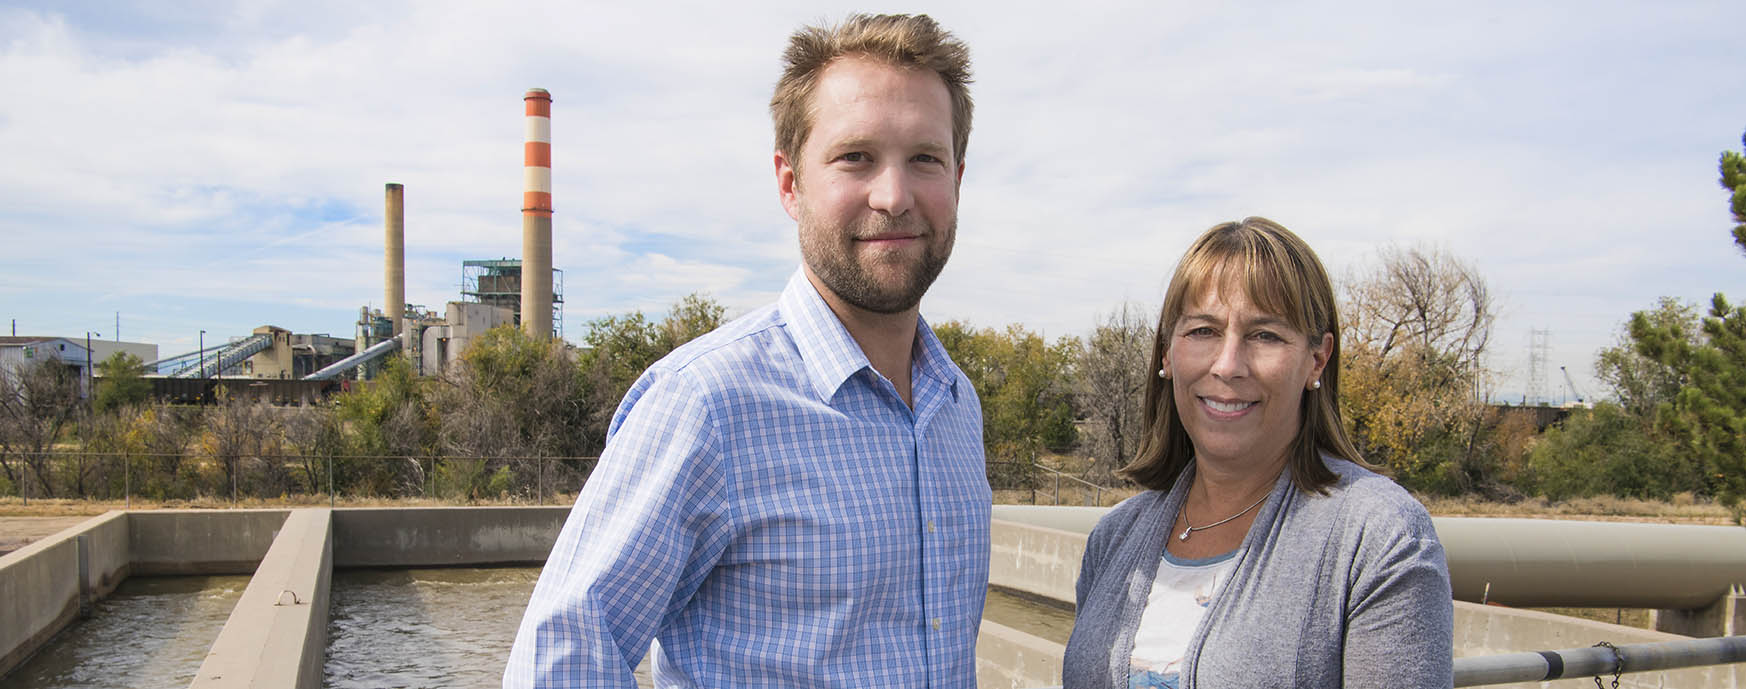 Photo of man and woman standing outside with power plant in background.